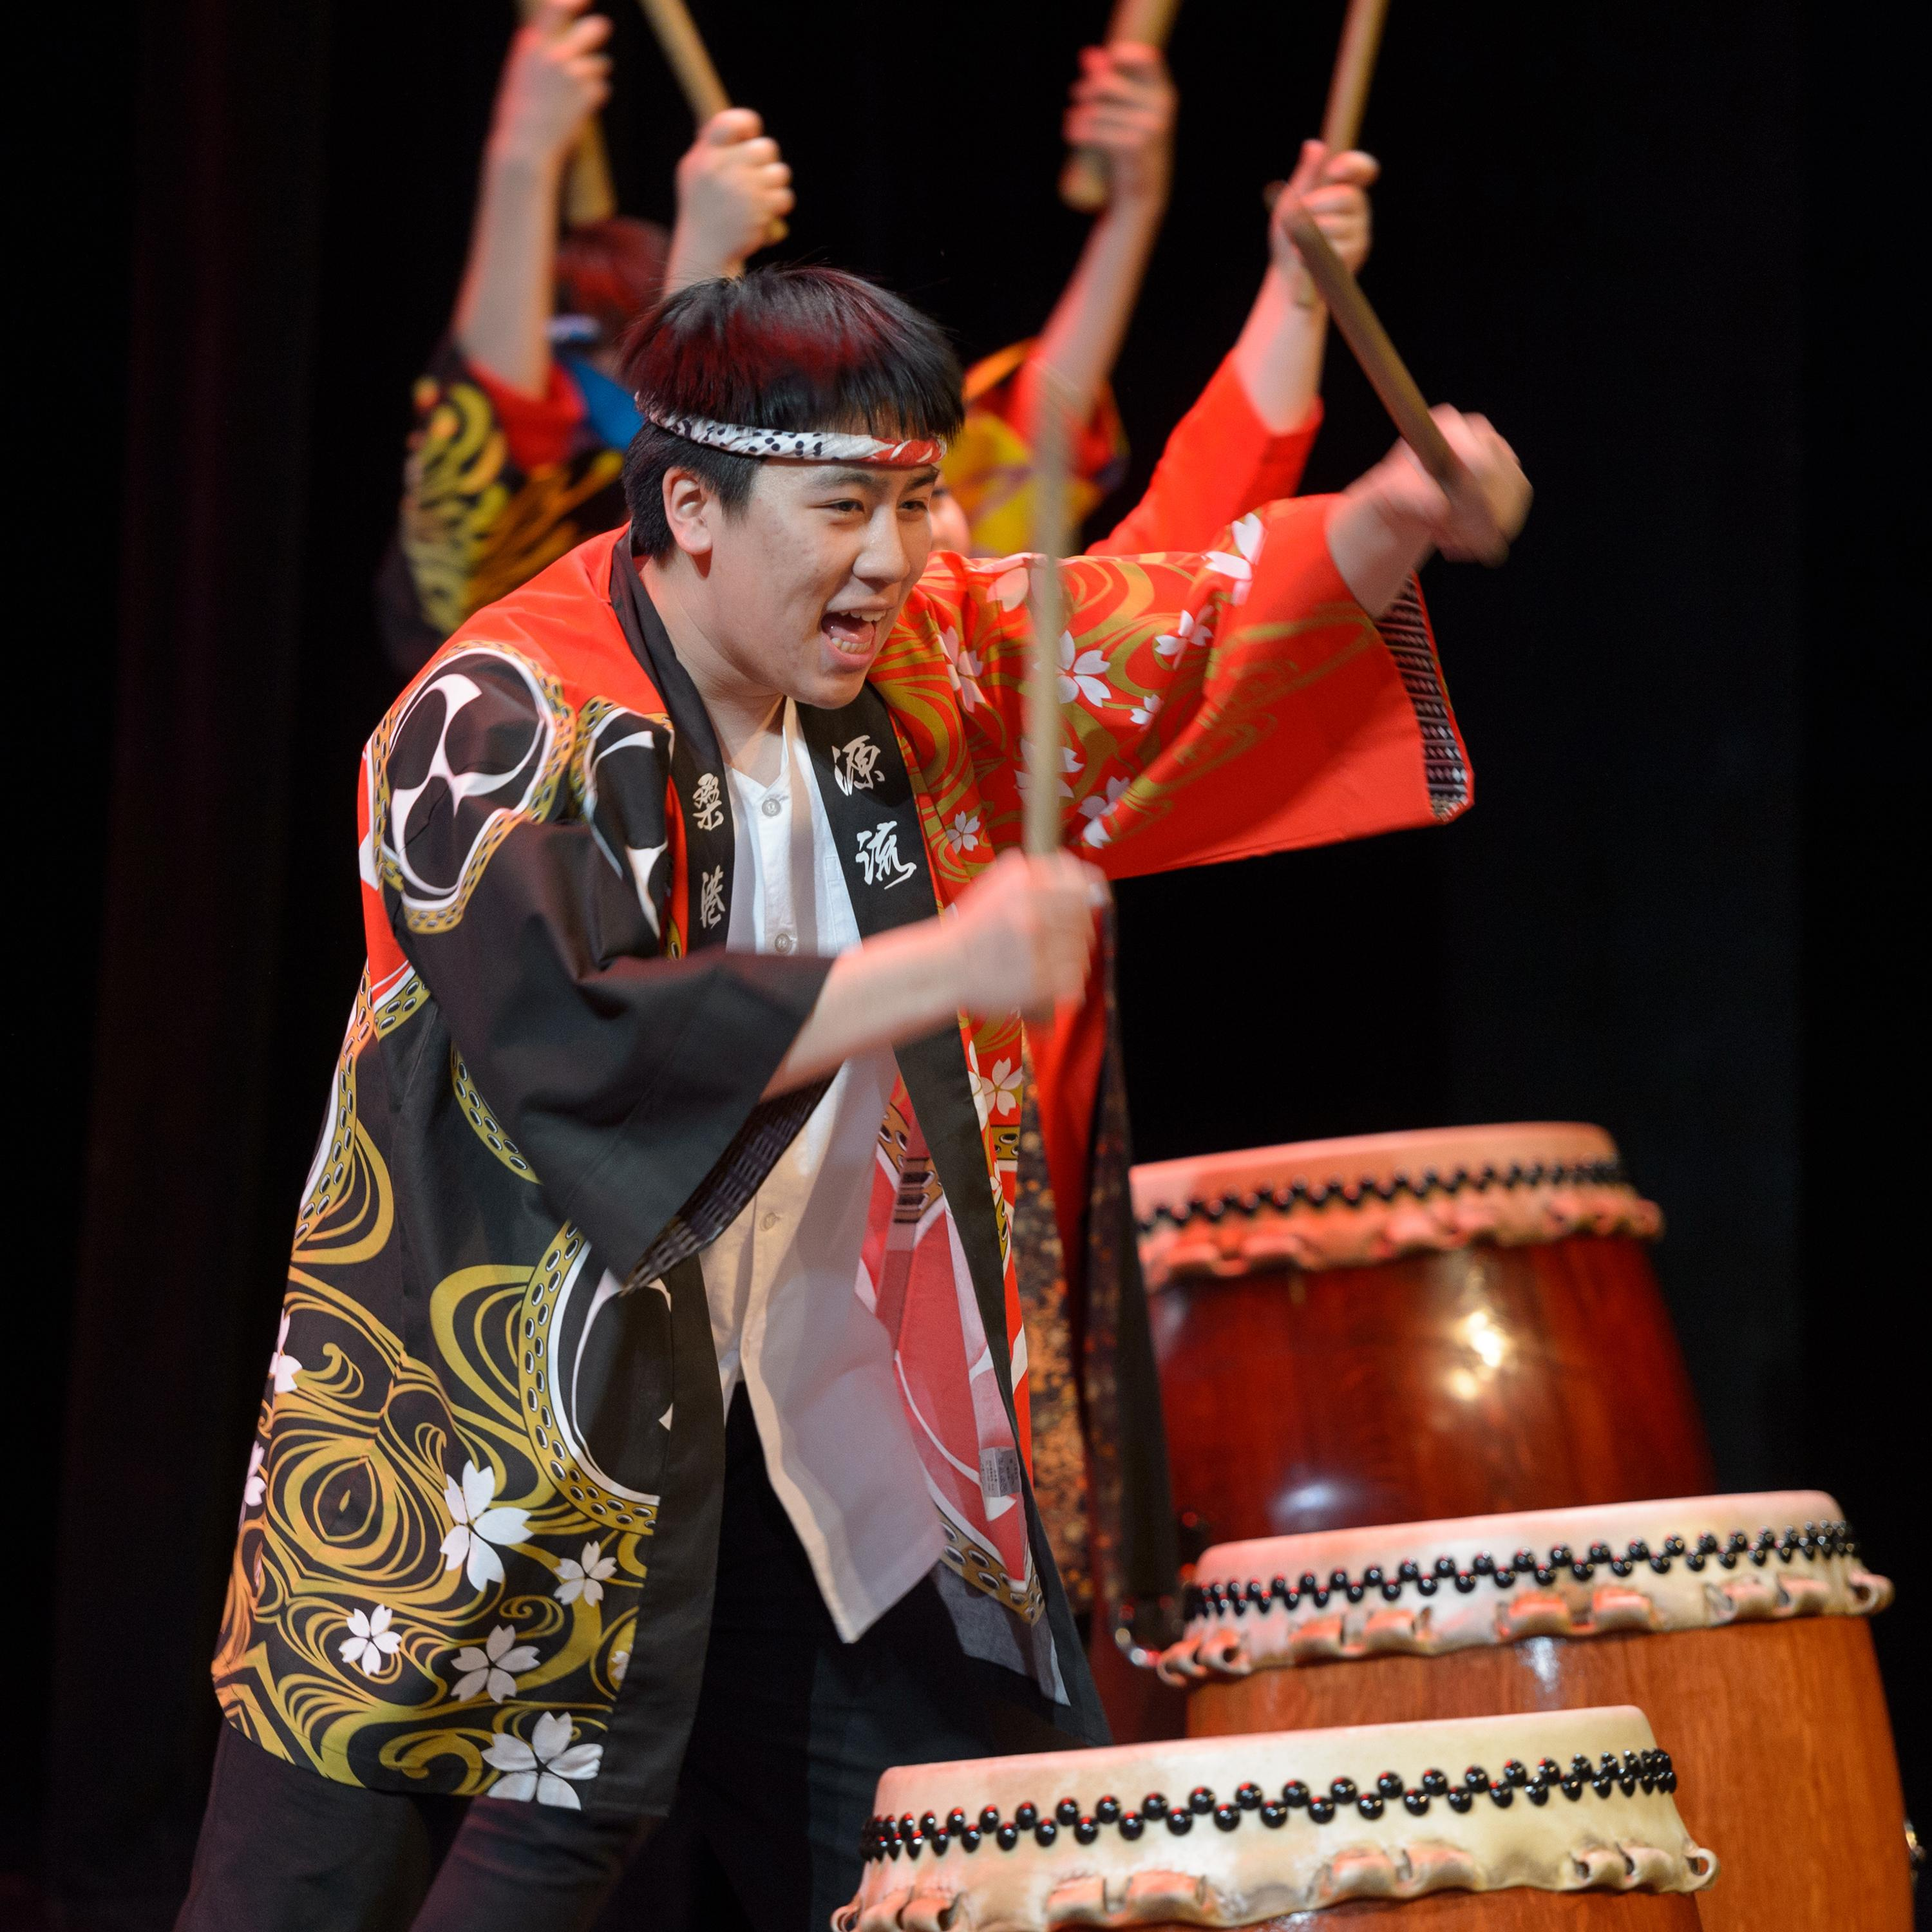 Performance still of a retreating line of drummers holding their sticks above Japanese *taiko* drums